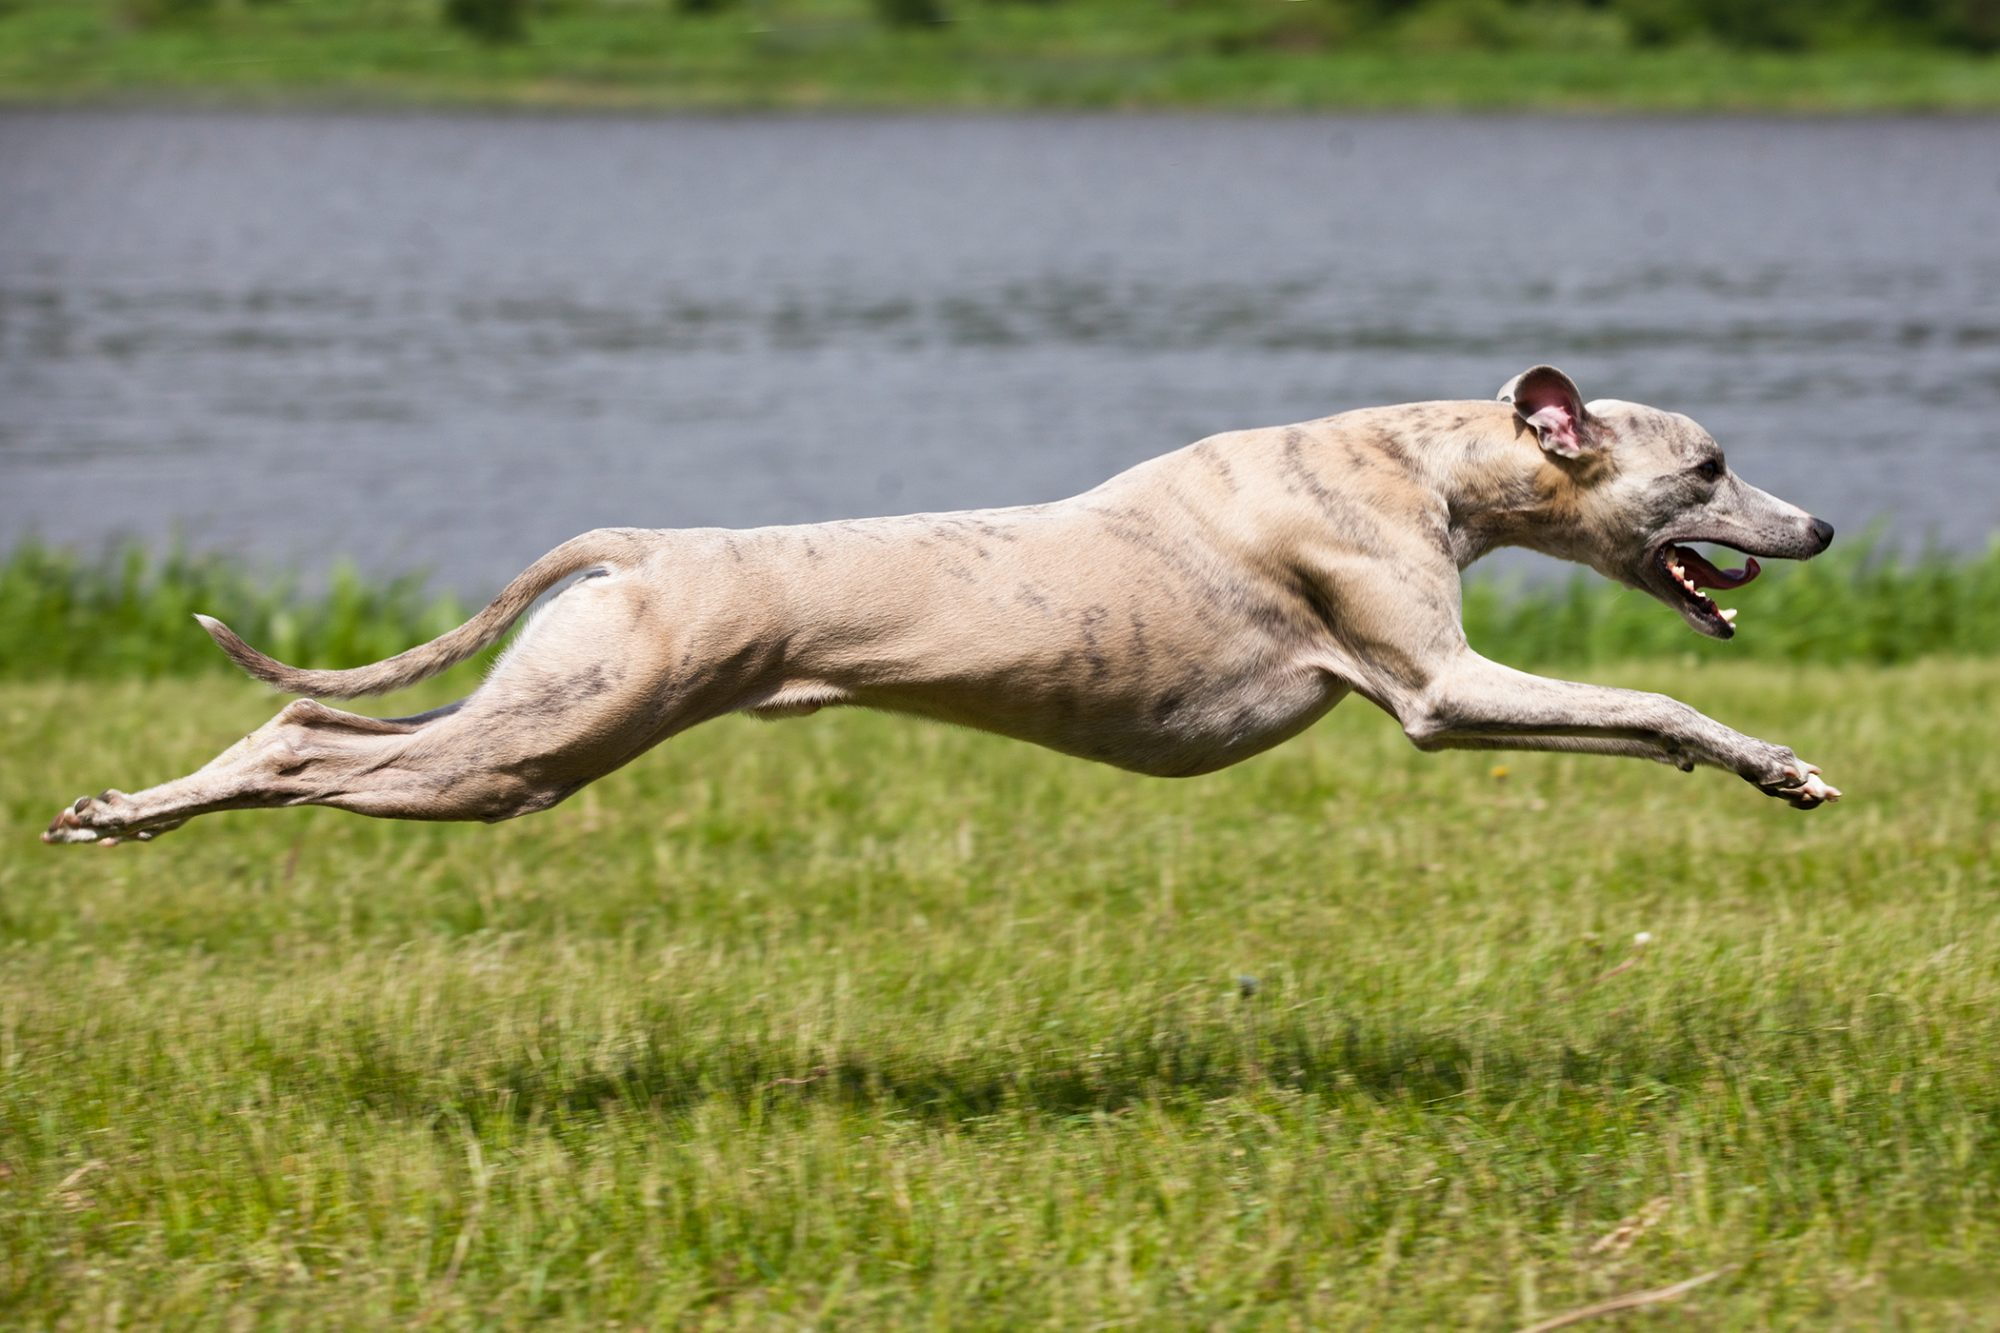 Whippet dog running